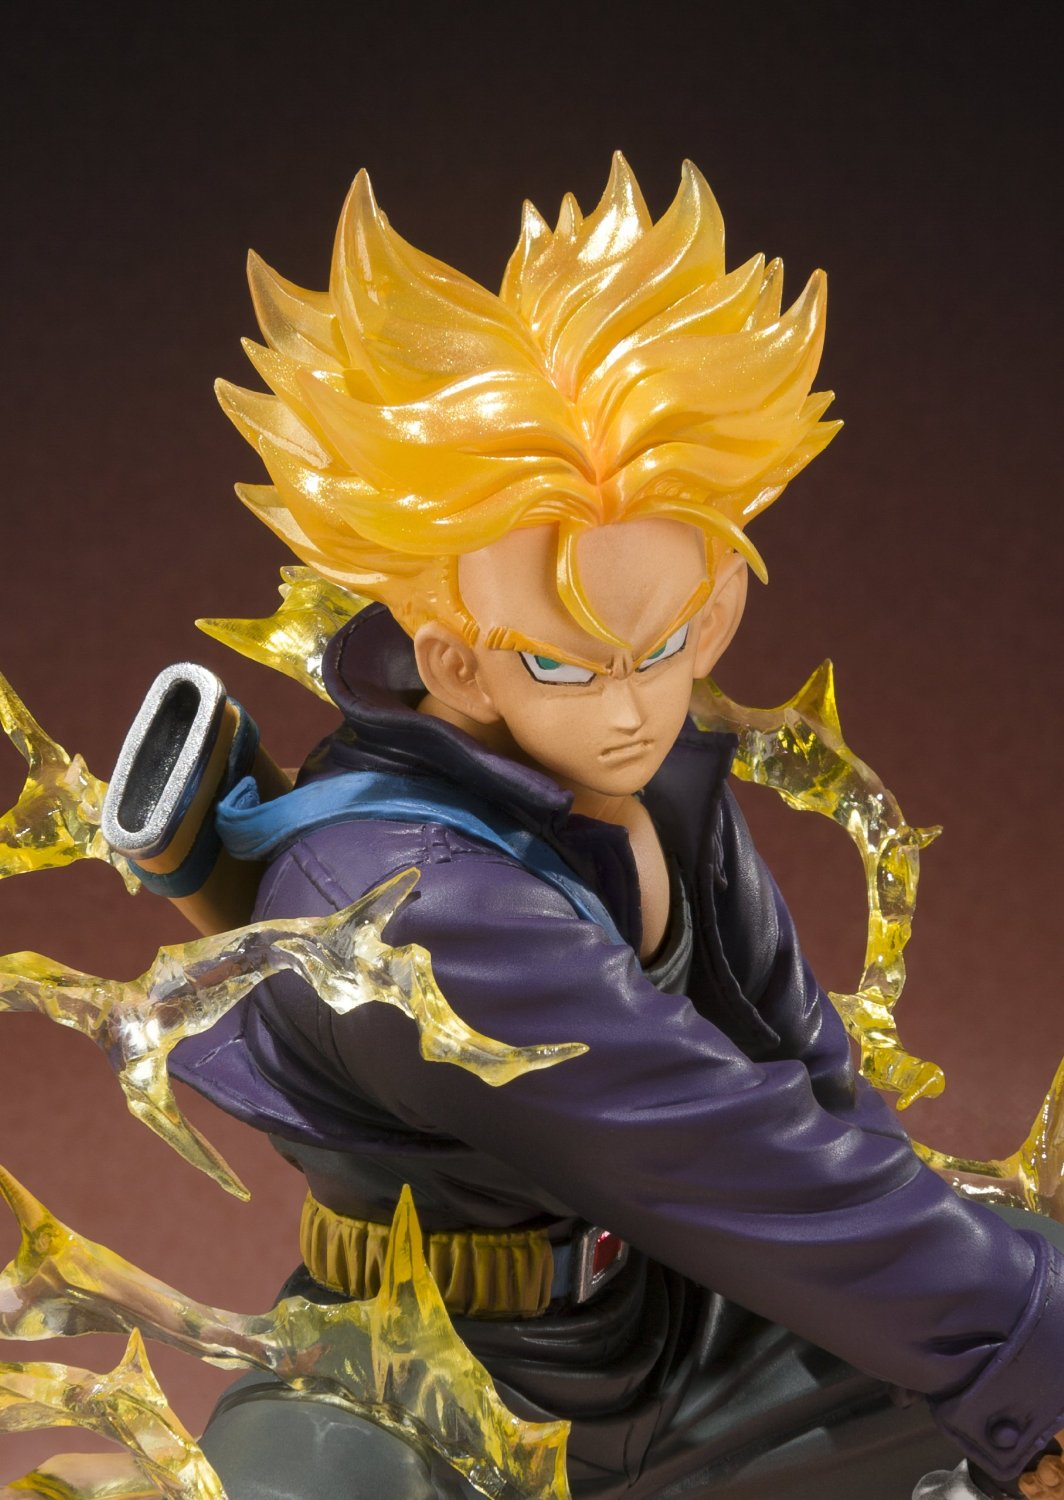 Bandai Tamashii Nations Figuarts Zero Super Saiyan Trunks